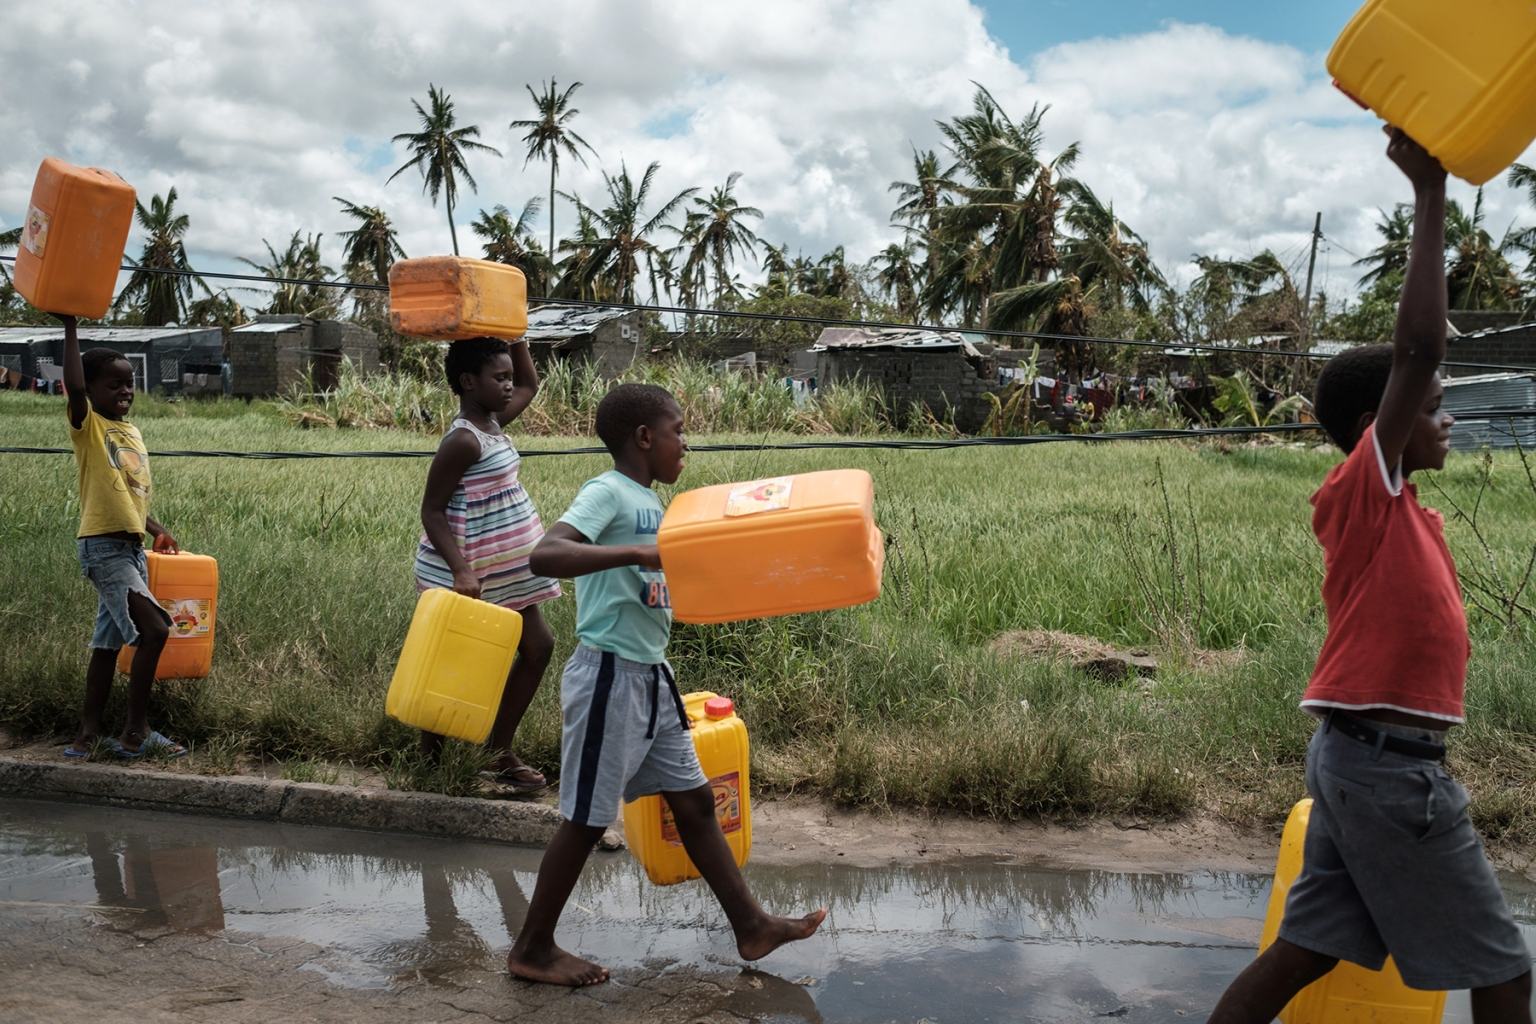 Children carry empty tanks to get water following the cyclone in Beira, Mozambique, on March 21. YASUYOSHI CHIBA/AFP/Getty Images